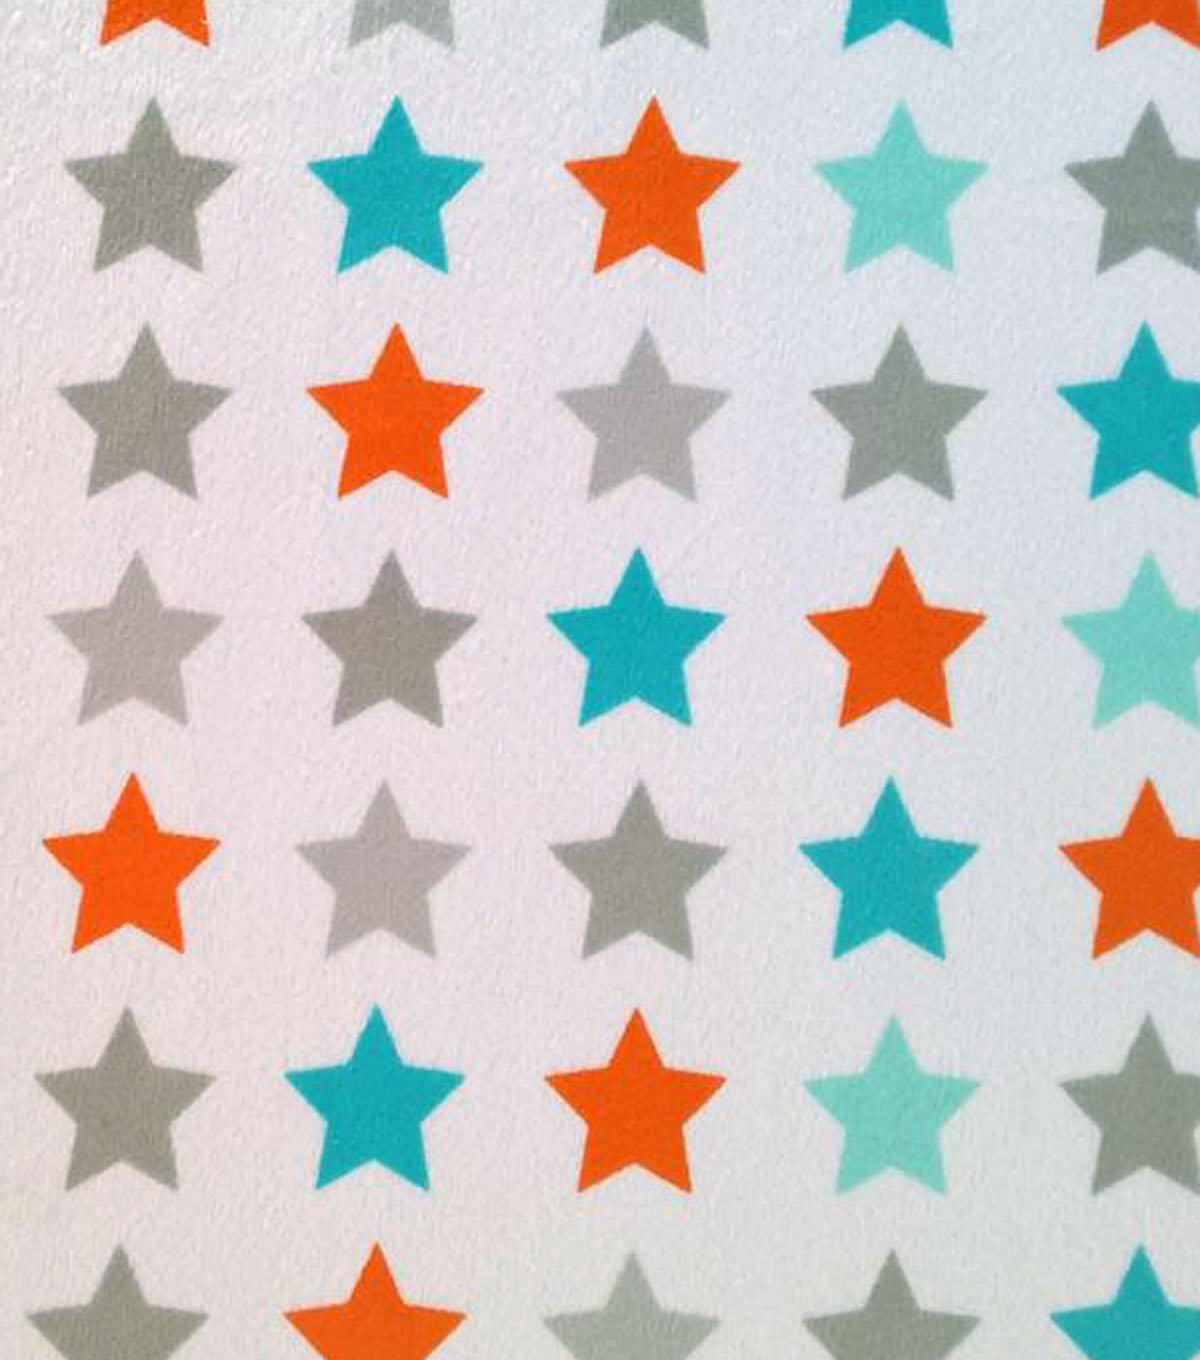 Soft N Comfy Fabric Stars Turquoise Orange